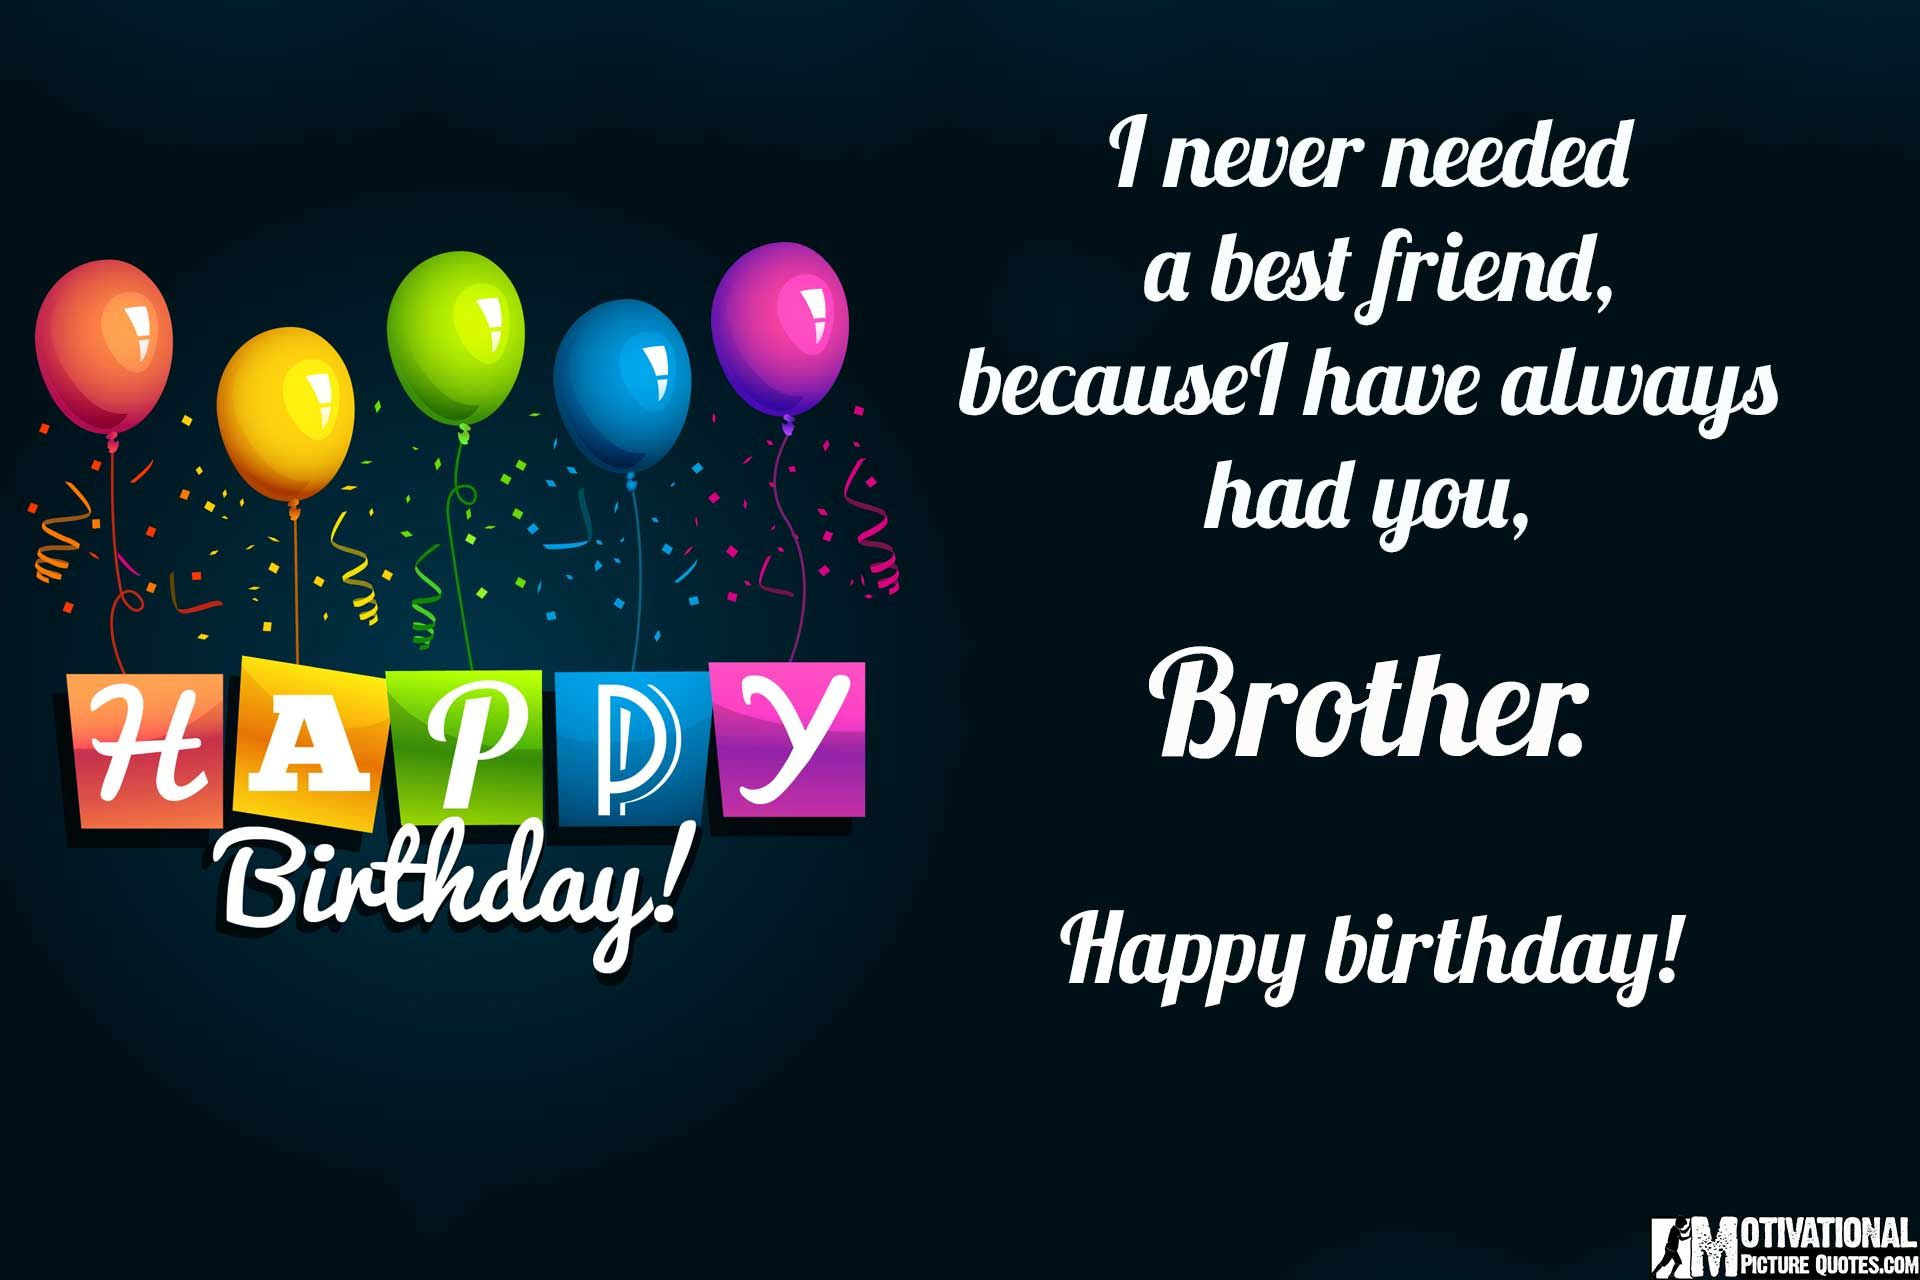 Inspirational Birthday Quotes Images With Cute Wishing Messages Motivationa Birthday Wishes For Brother Birthday Quotes Inspirational Brother Birthday Quotes